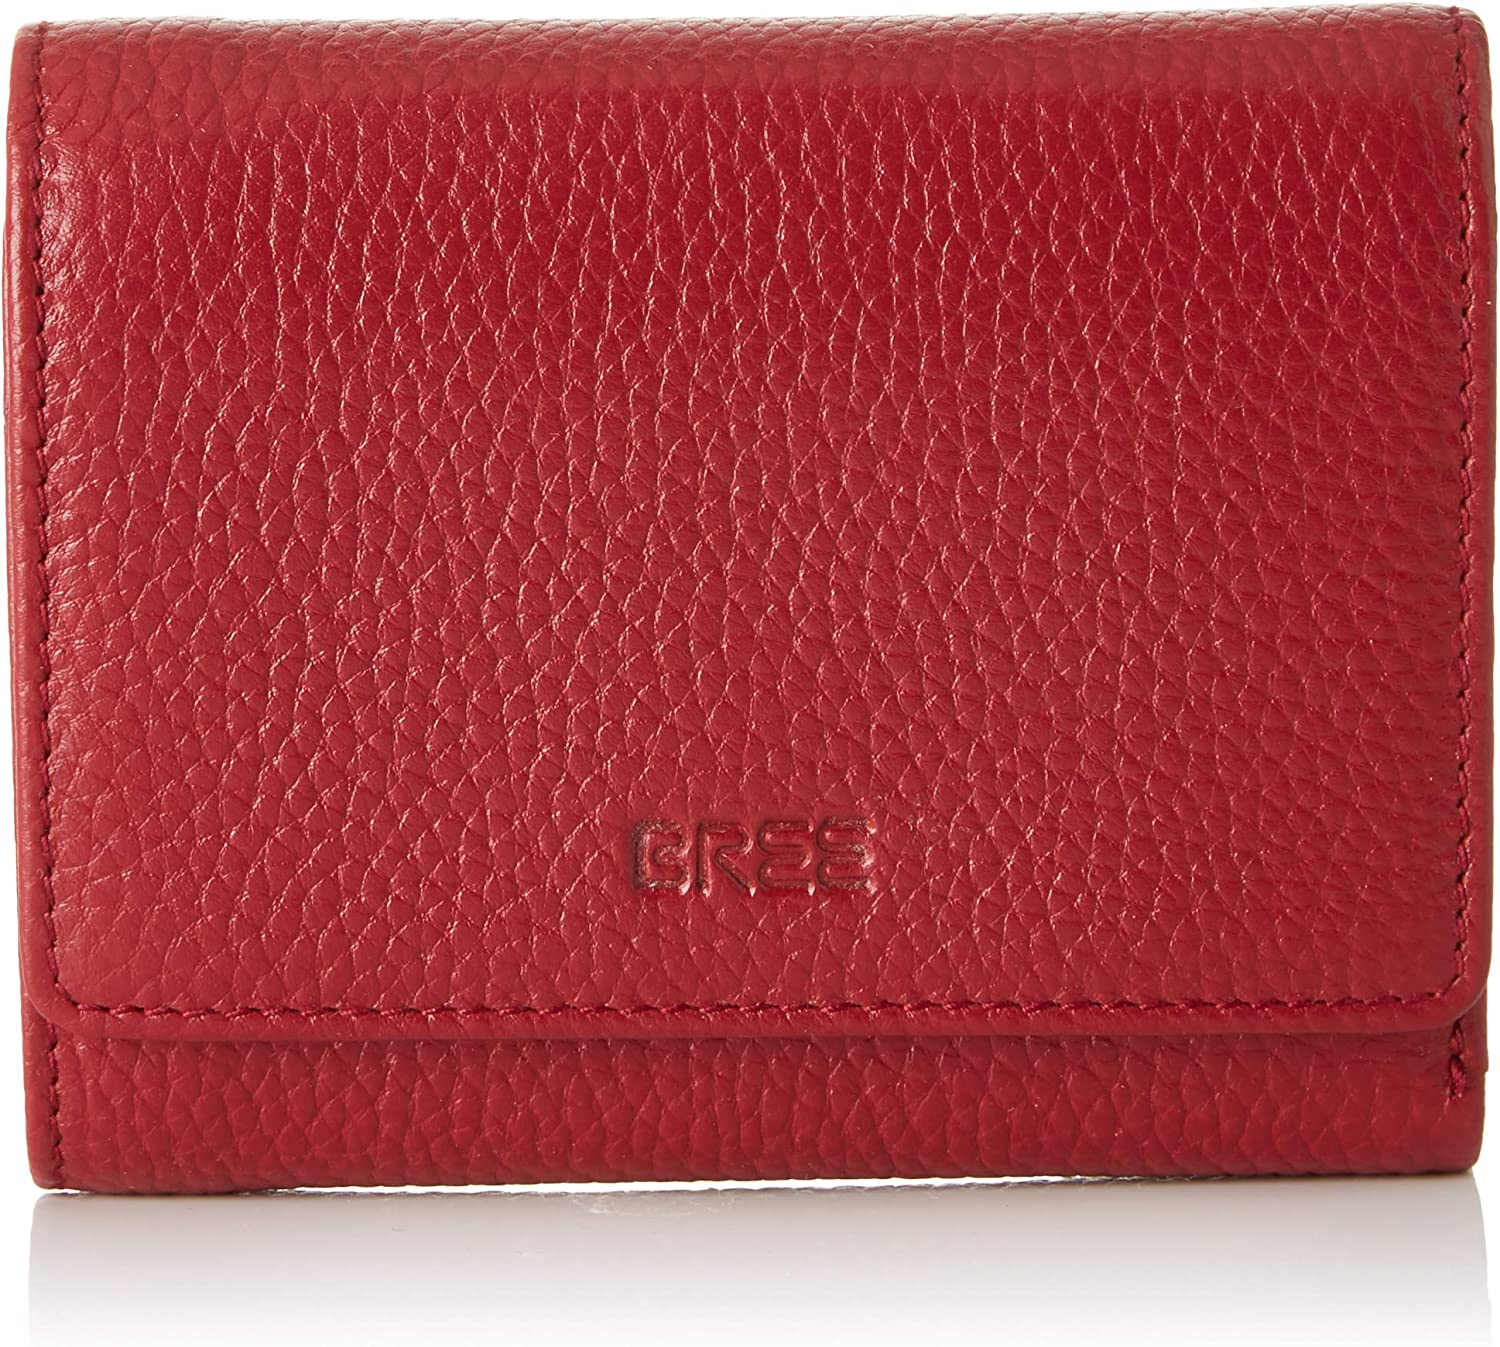 BREE Collection Liv New 106, Brick Red, Combi. Purse, Women's Wallet, Black (Brick Red), 2x11.5x13 cm (B x H T)